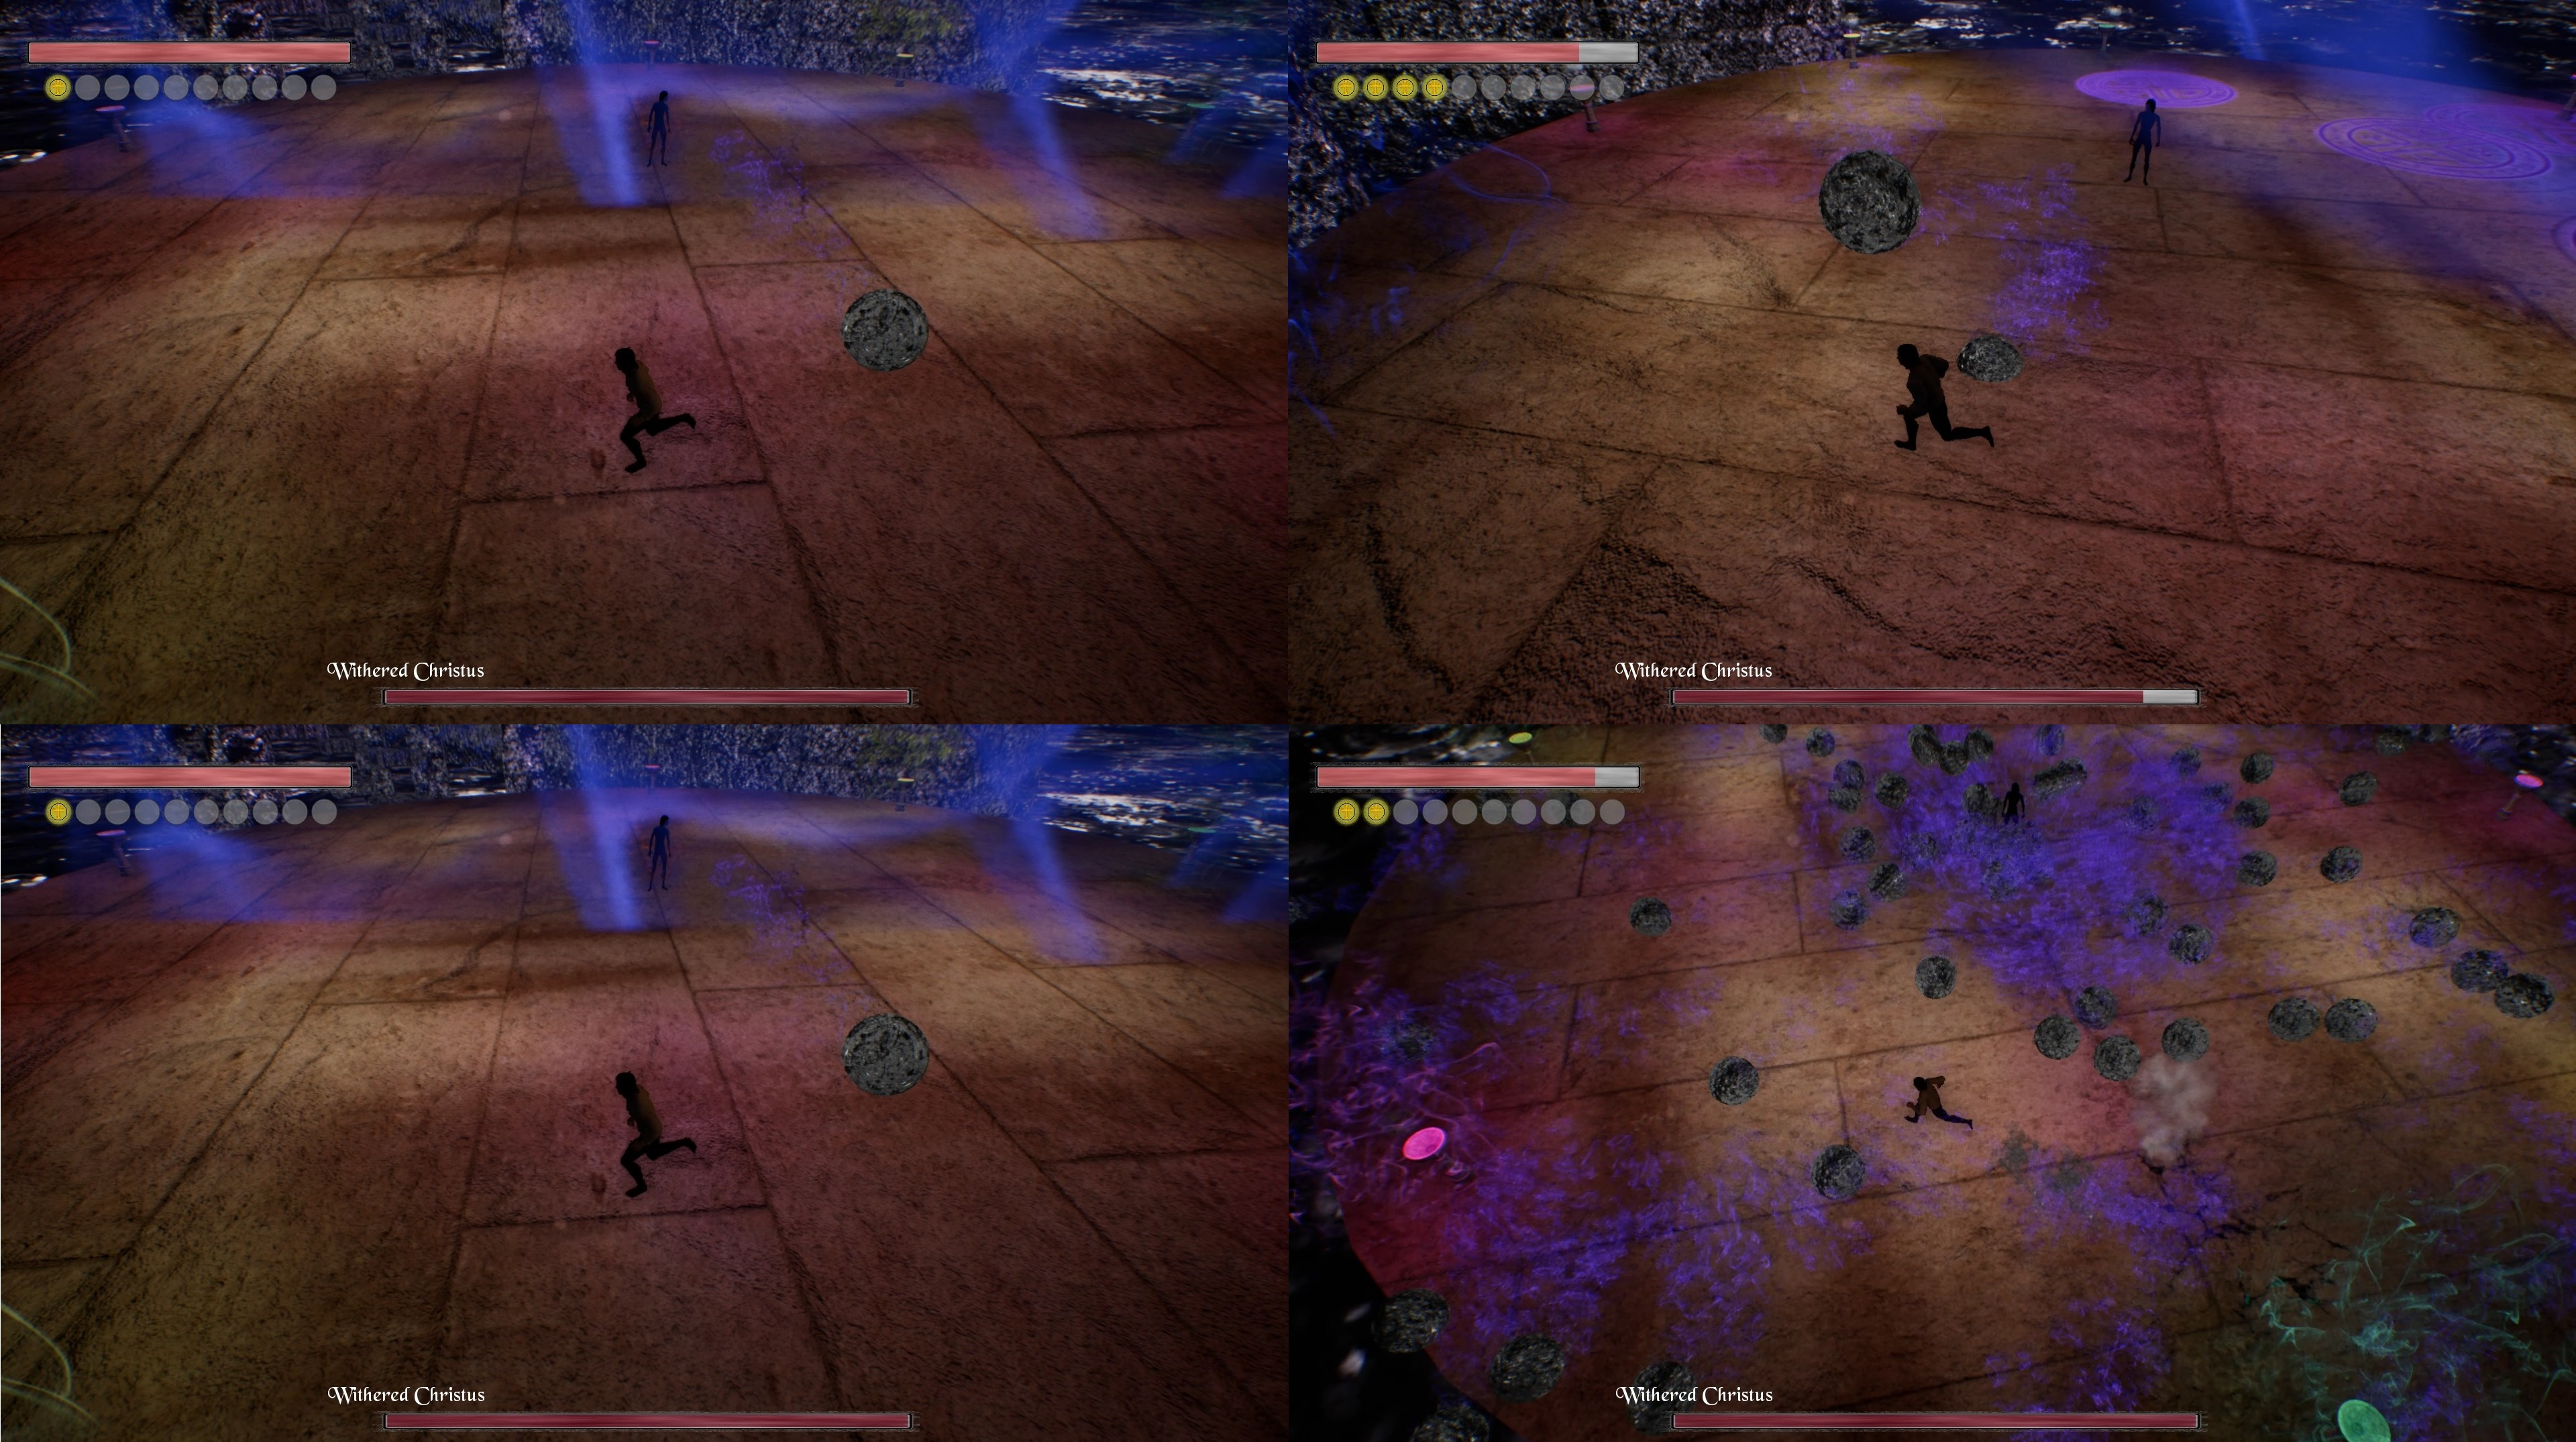 The four main attacks of Withered Christus during Phase 1